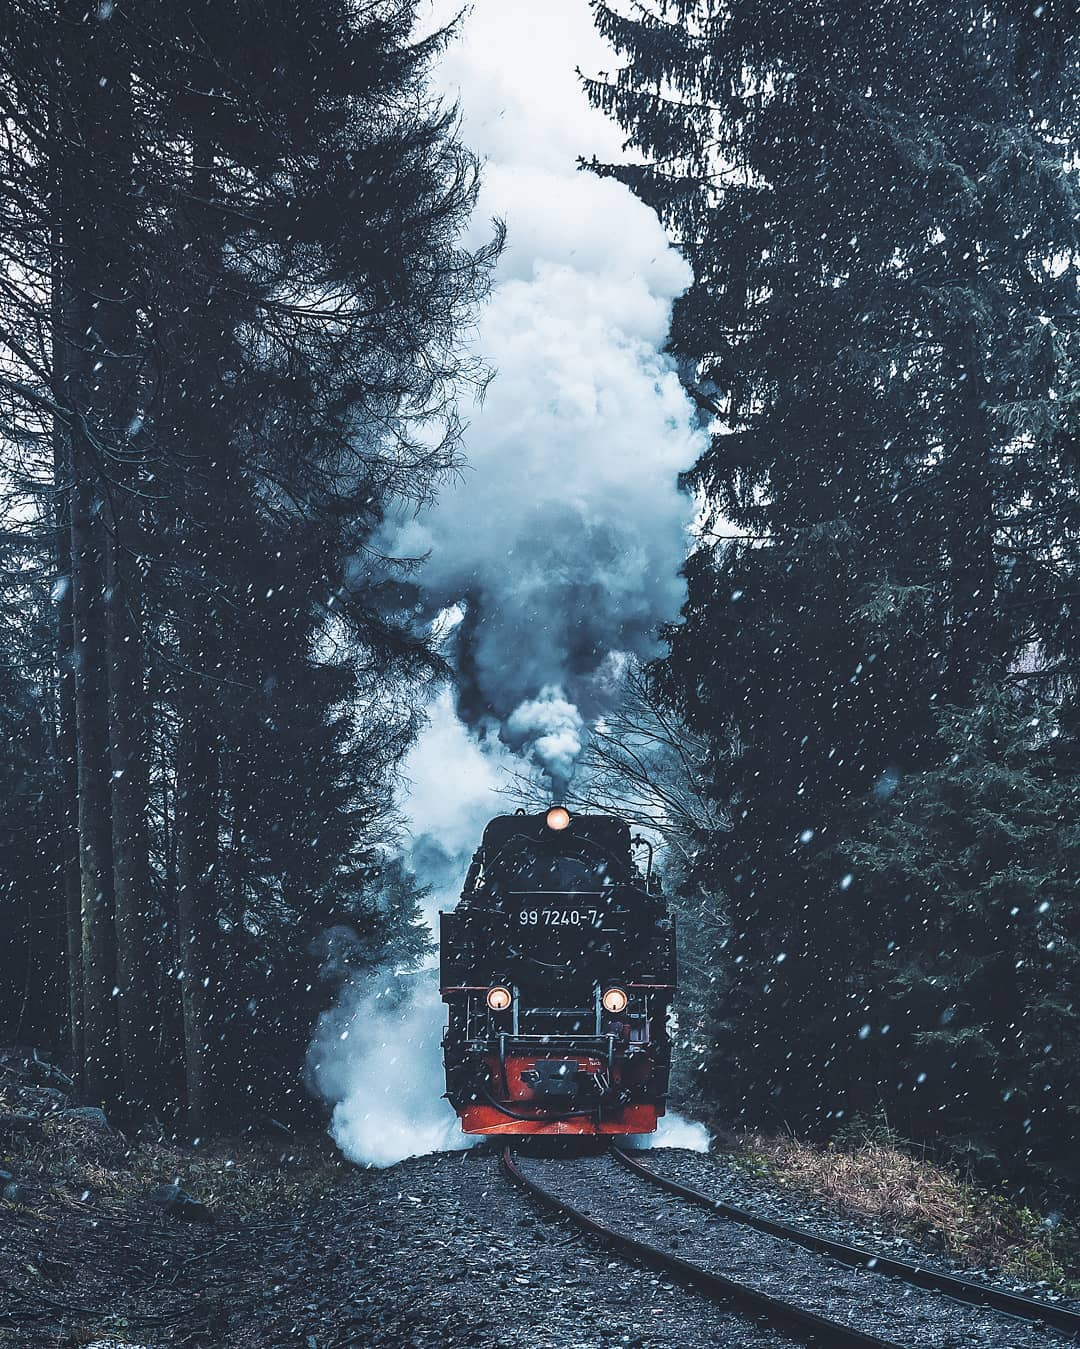 Train in Harz National Park, Germany